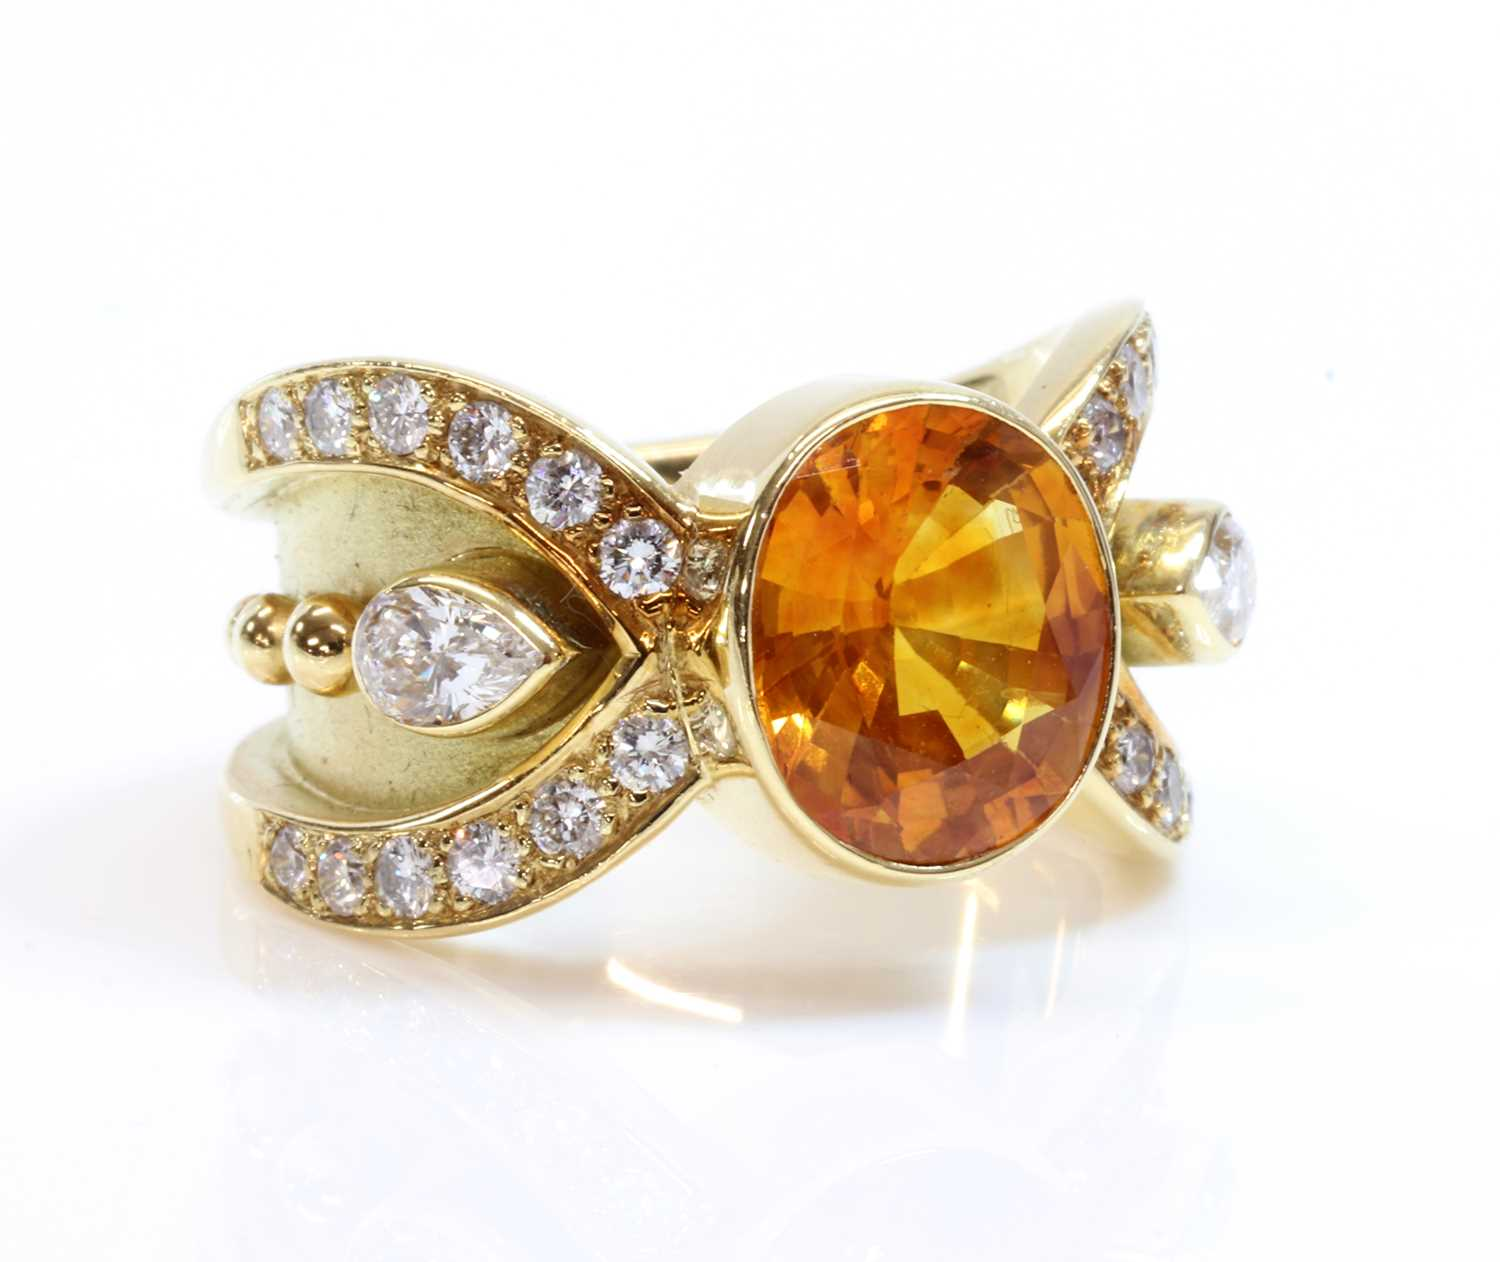 A golden yellow sapphire and diamond band ring,